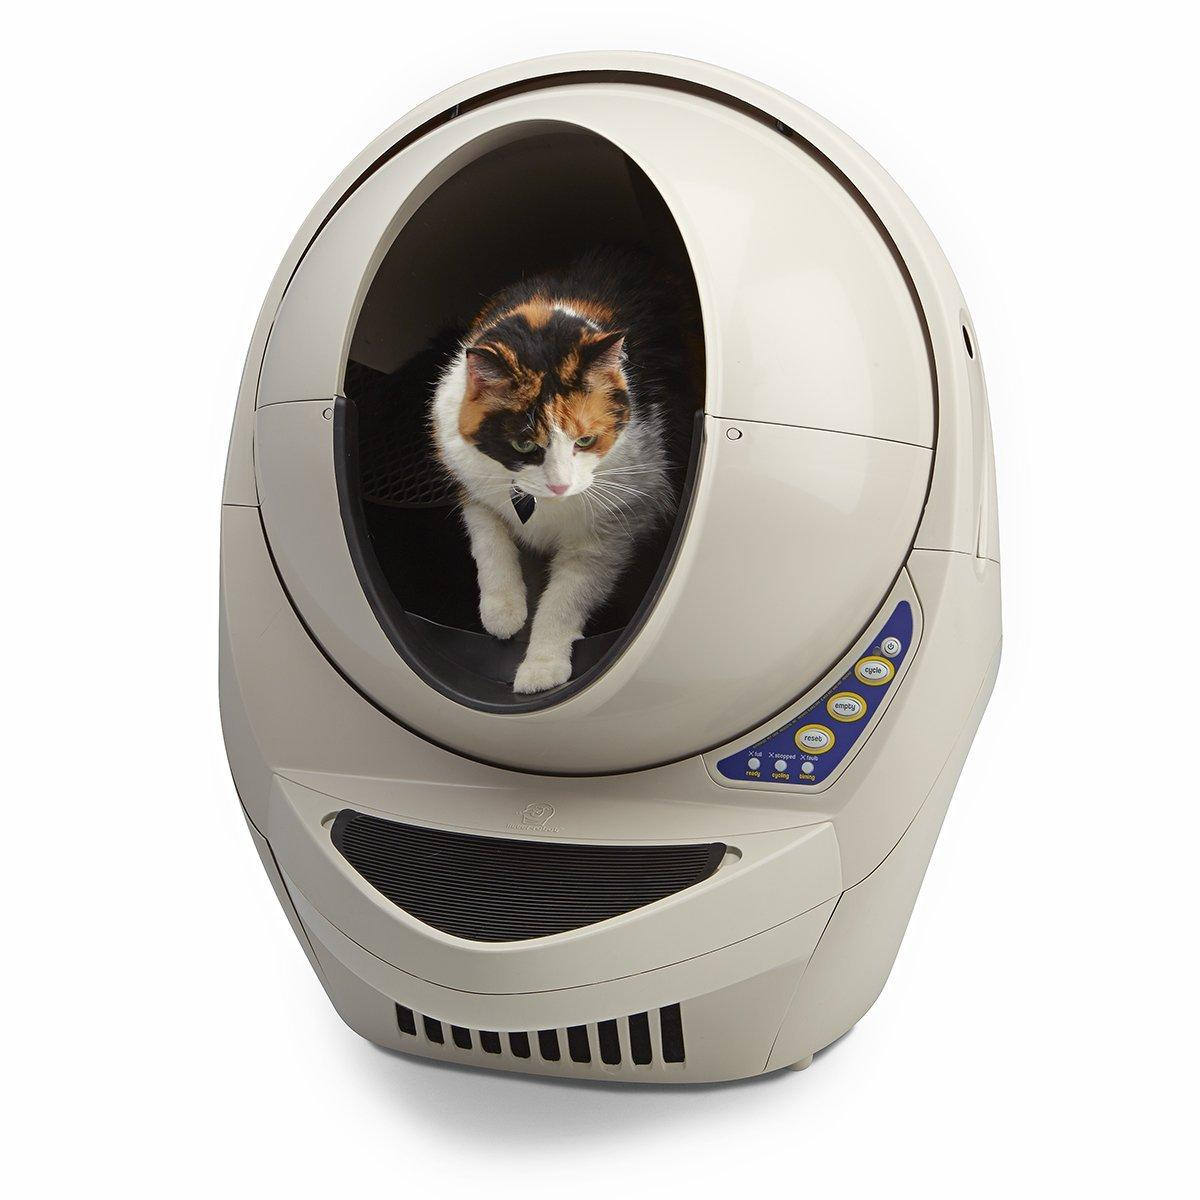 Litter Robot III OpenAir Automatic Litter Box Review MUST READ